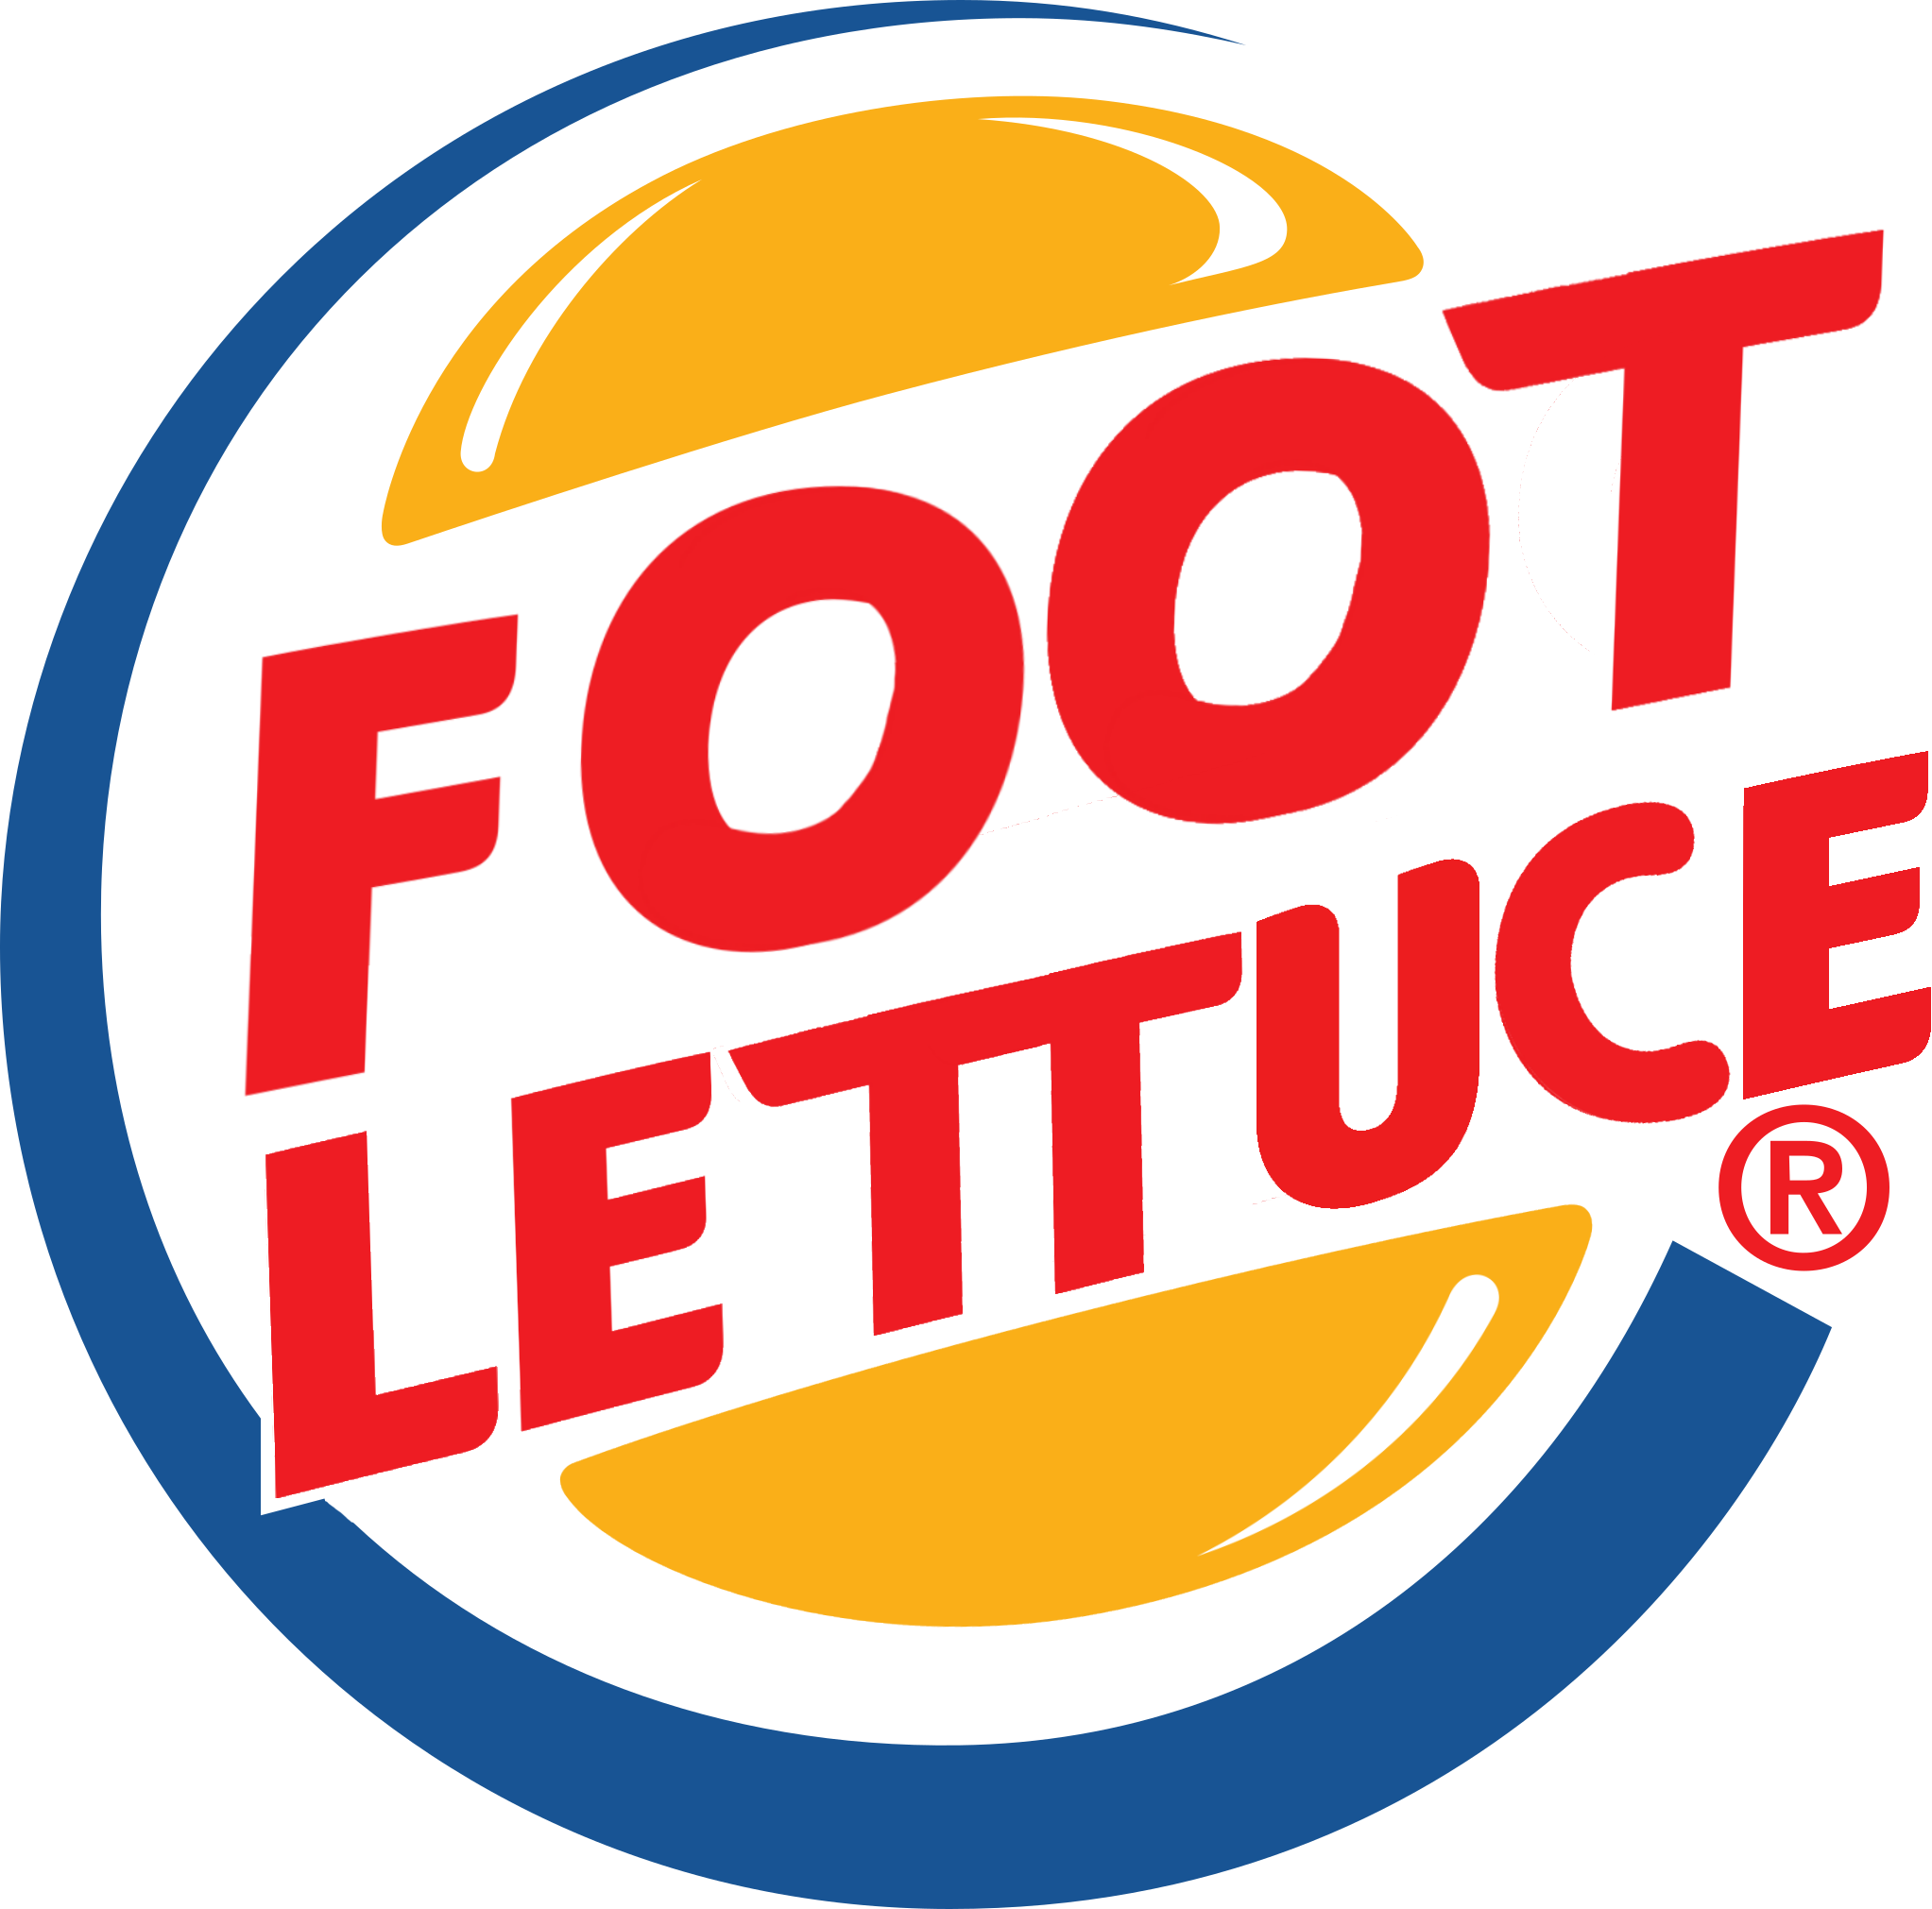 Number fifteen sbubby lettuceeaten. Burger king foot lettuce png clipart free stock